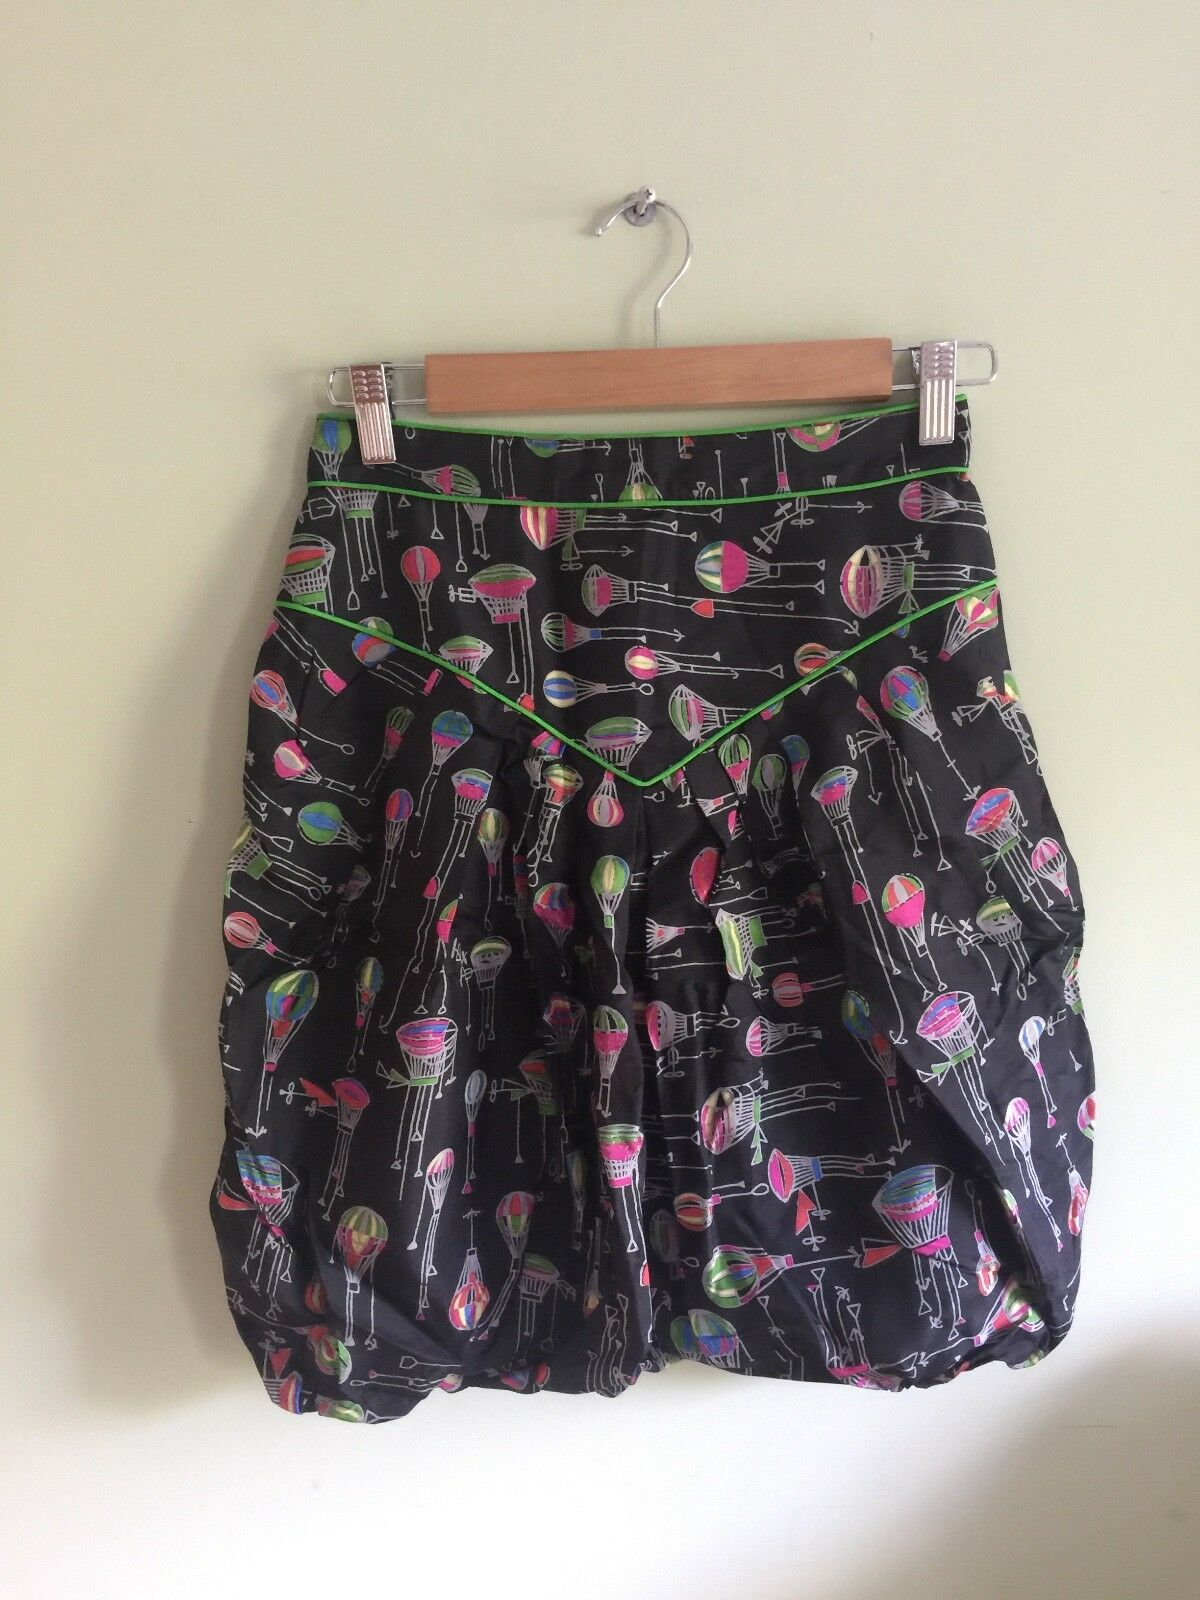 Anna Sui for Anthropologie skirt. Size 0. new with tag